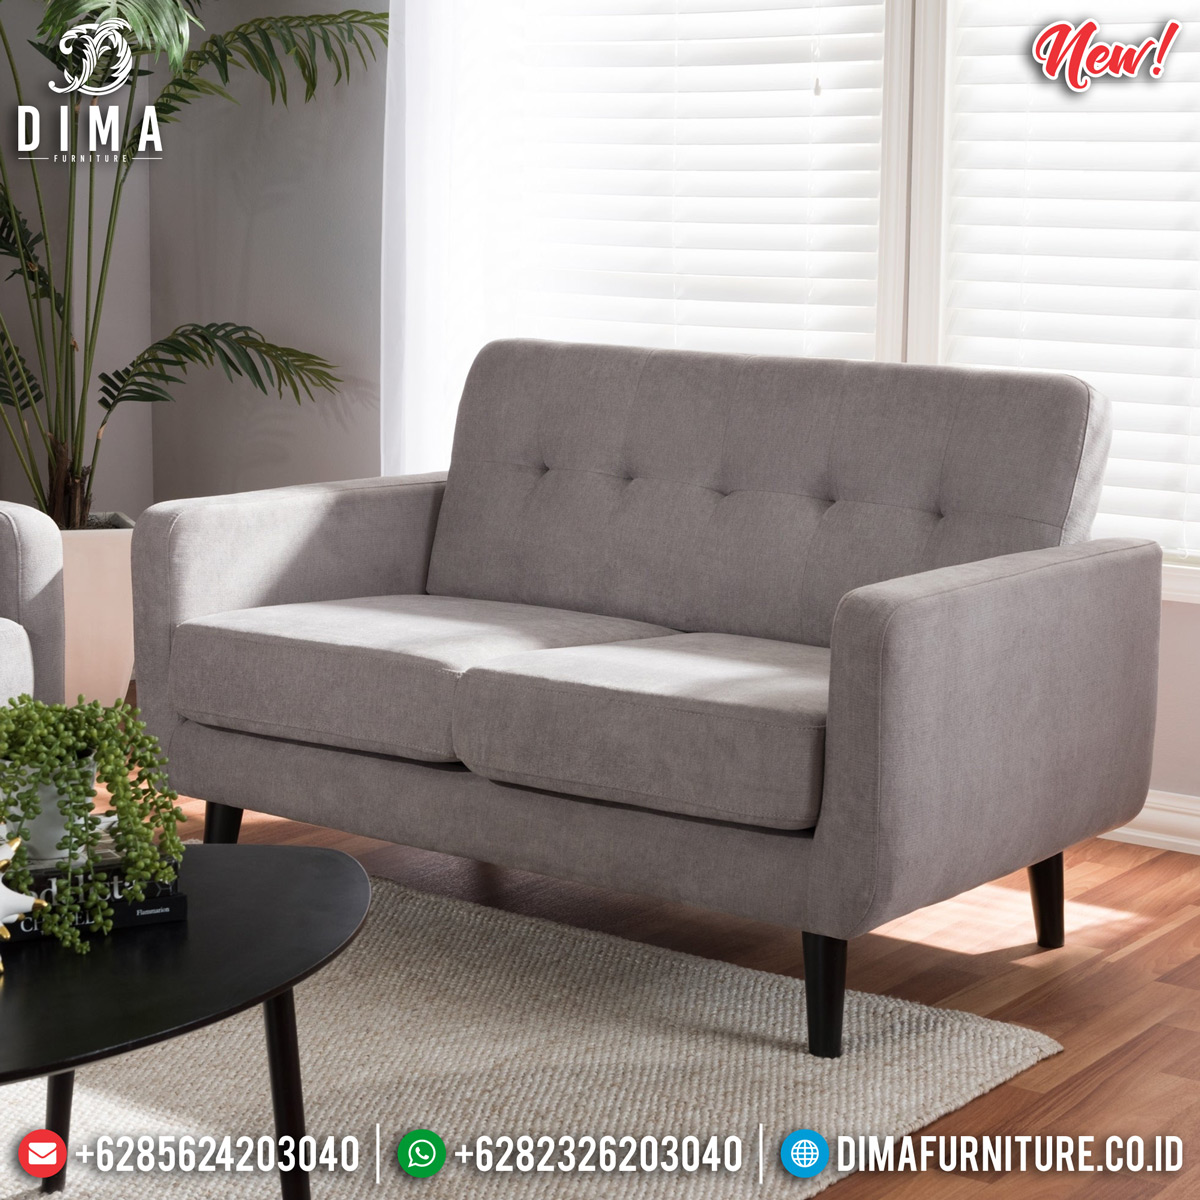 Desain Natural Sofa Santai Minimalis 3 Dudukan Beautiful Looking Interior BT-0738